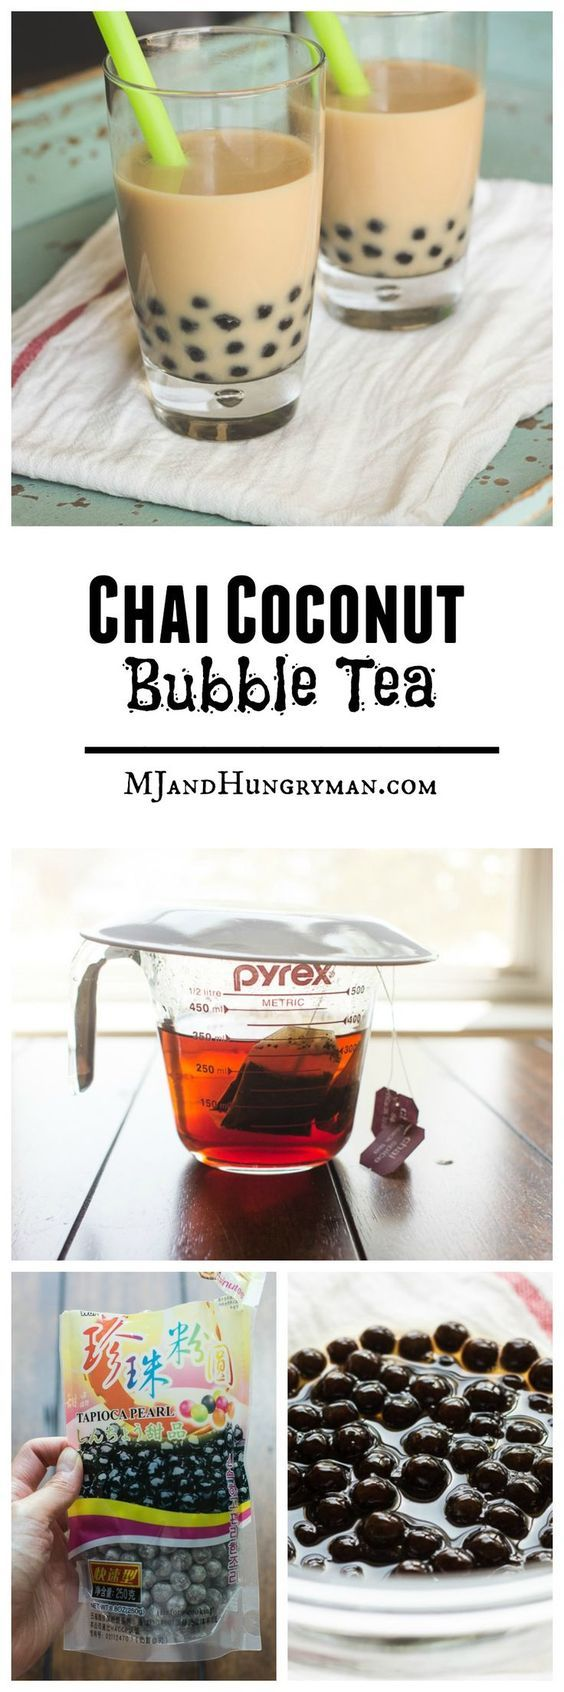 Chai Coconut Bubble Tea // Spice this recipe up with Bhakti | drinkbhakti.com